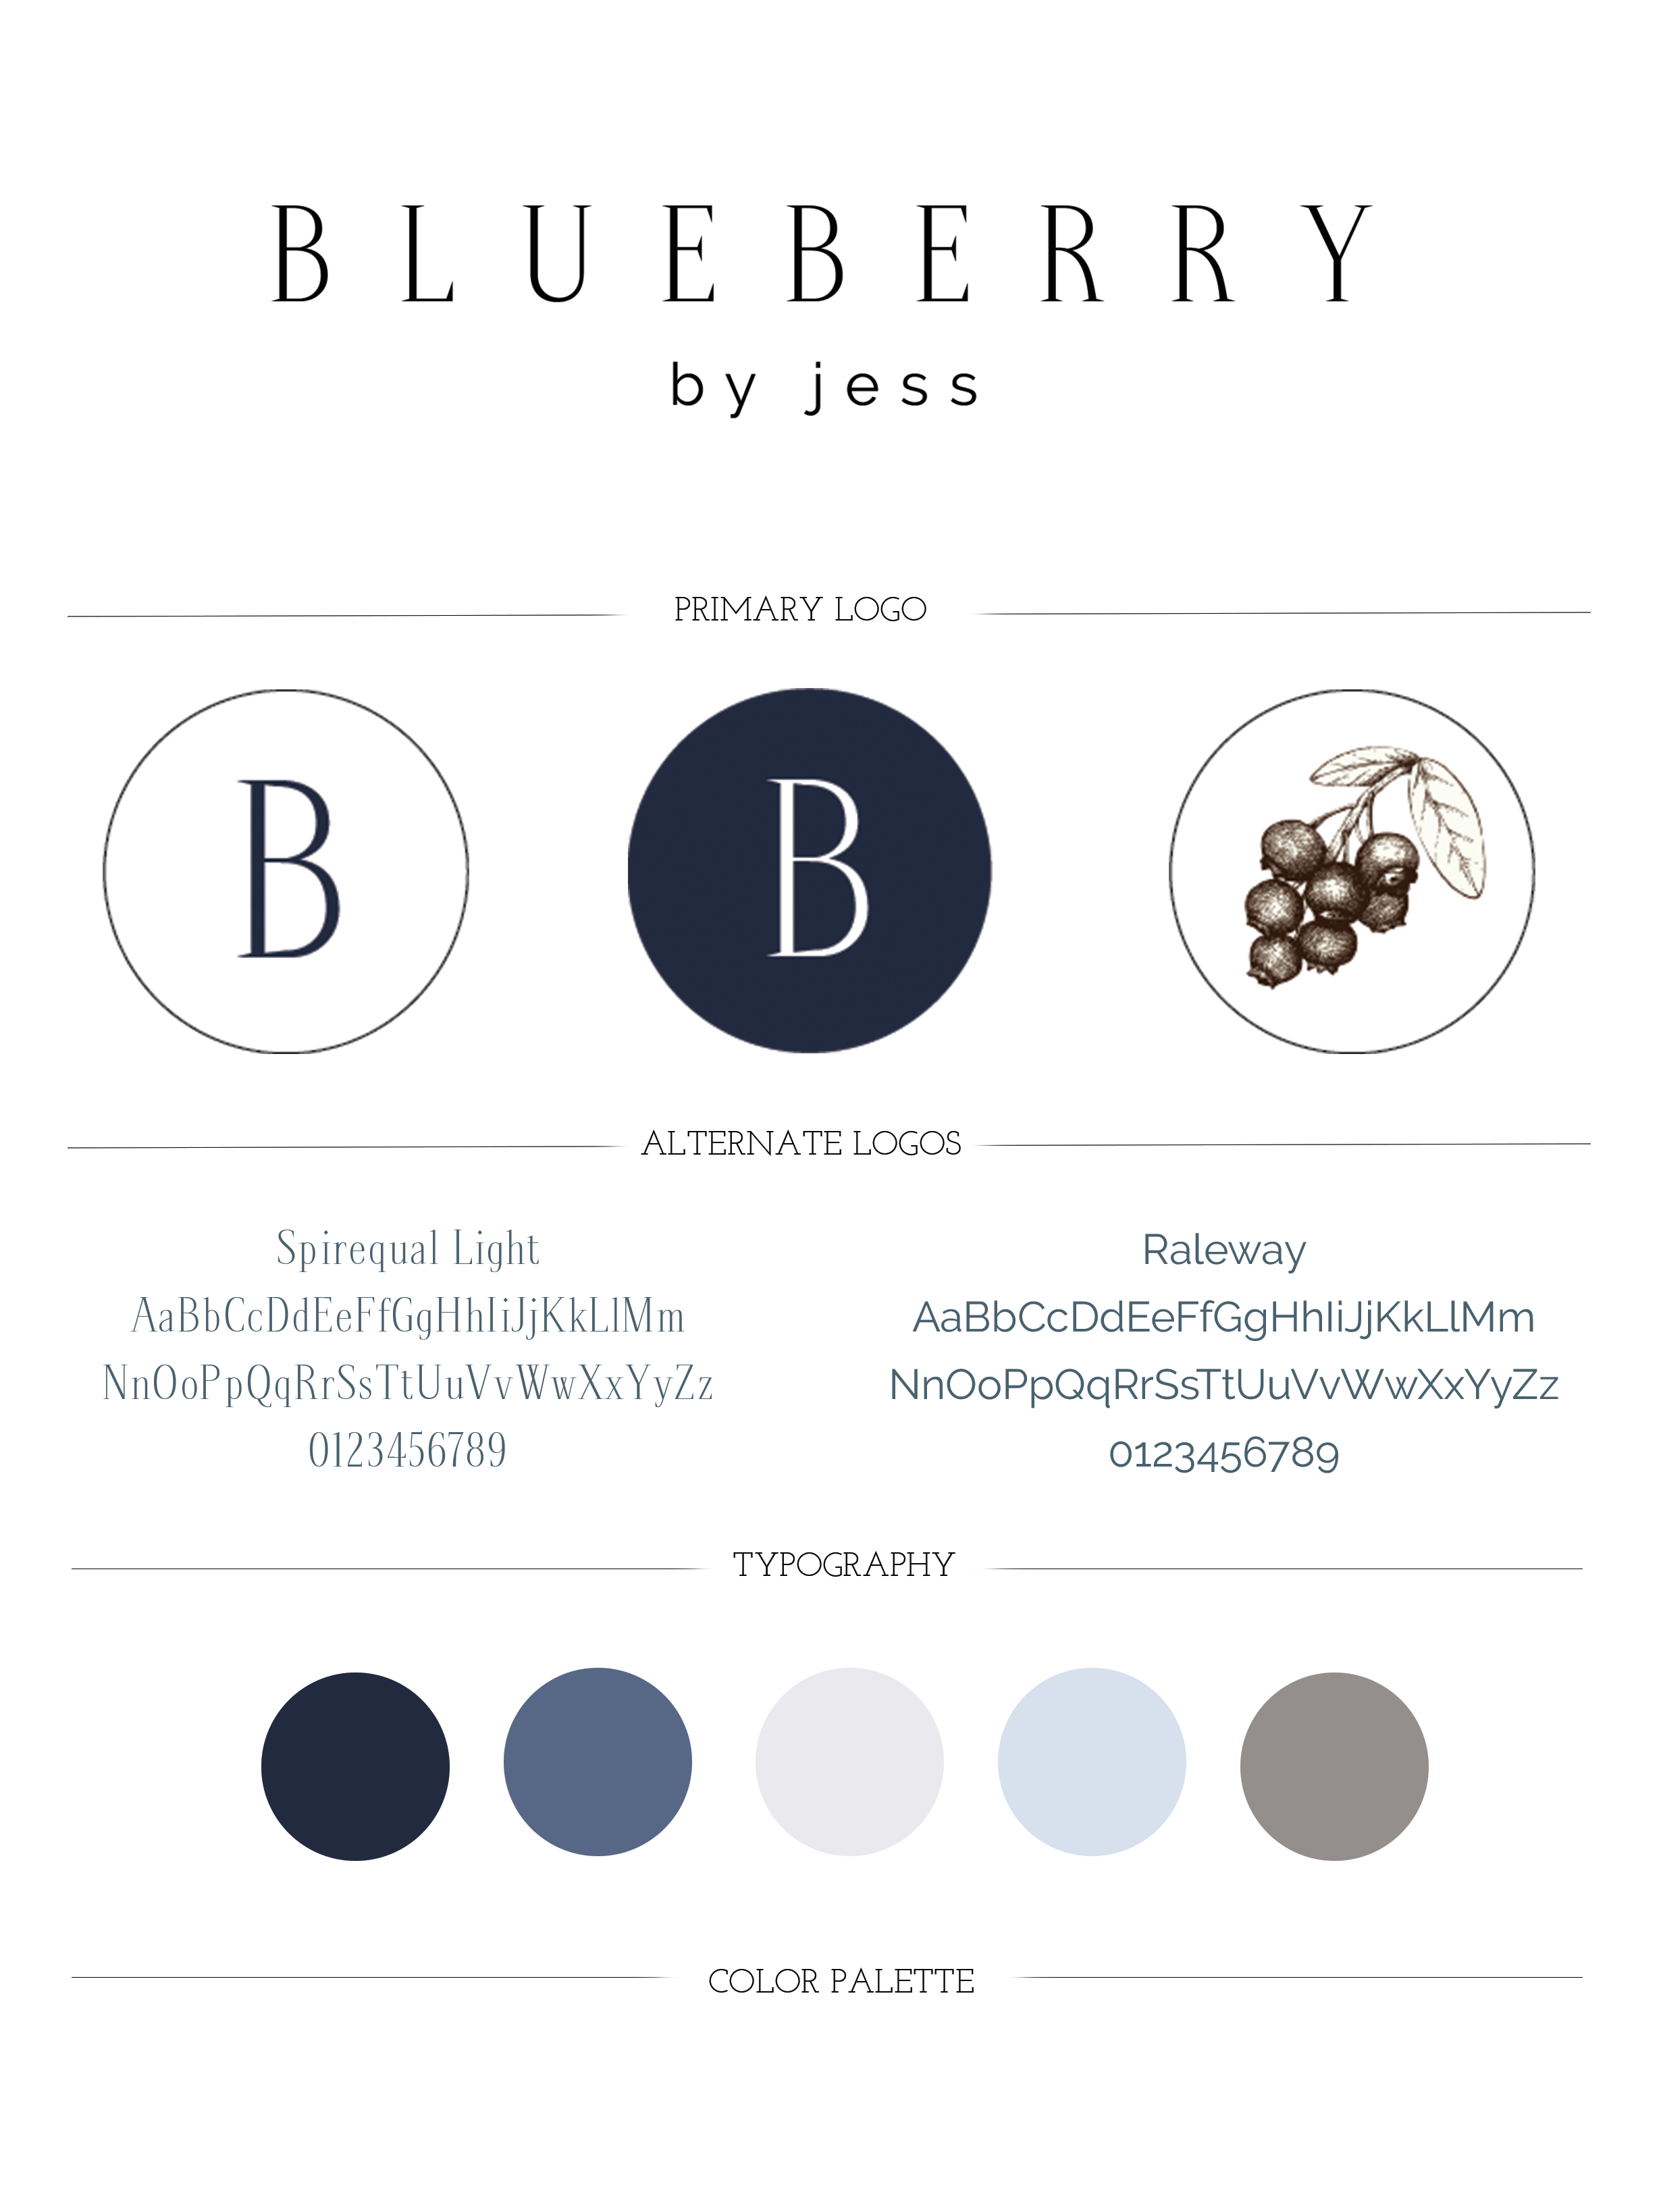 Blueberry by Jess Branding Guide | Designed by Writefully Simple | www.writefullysimple.com